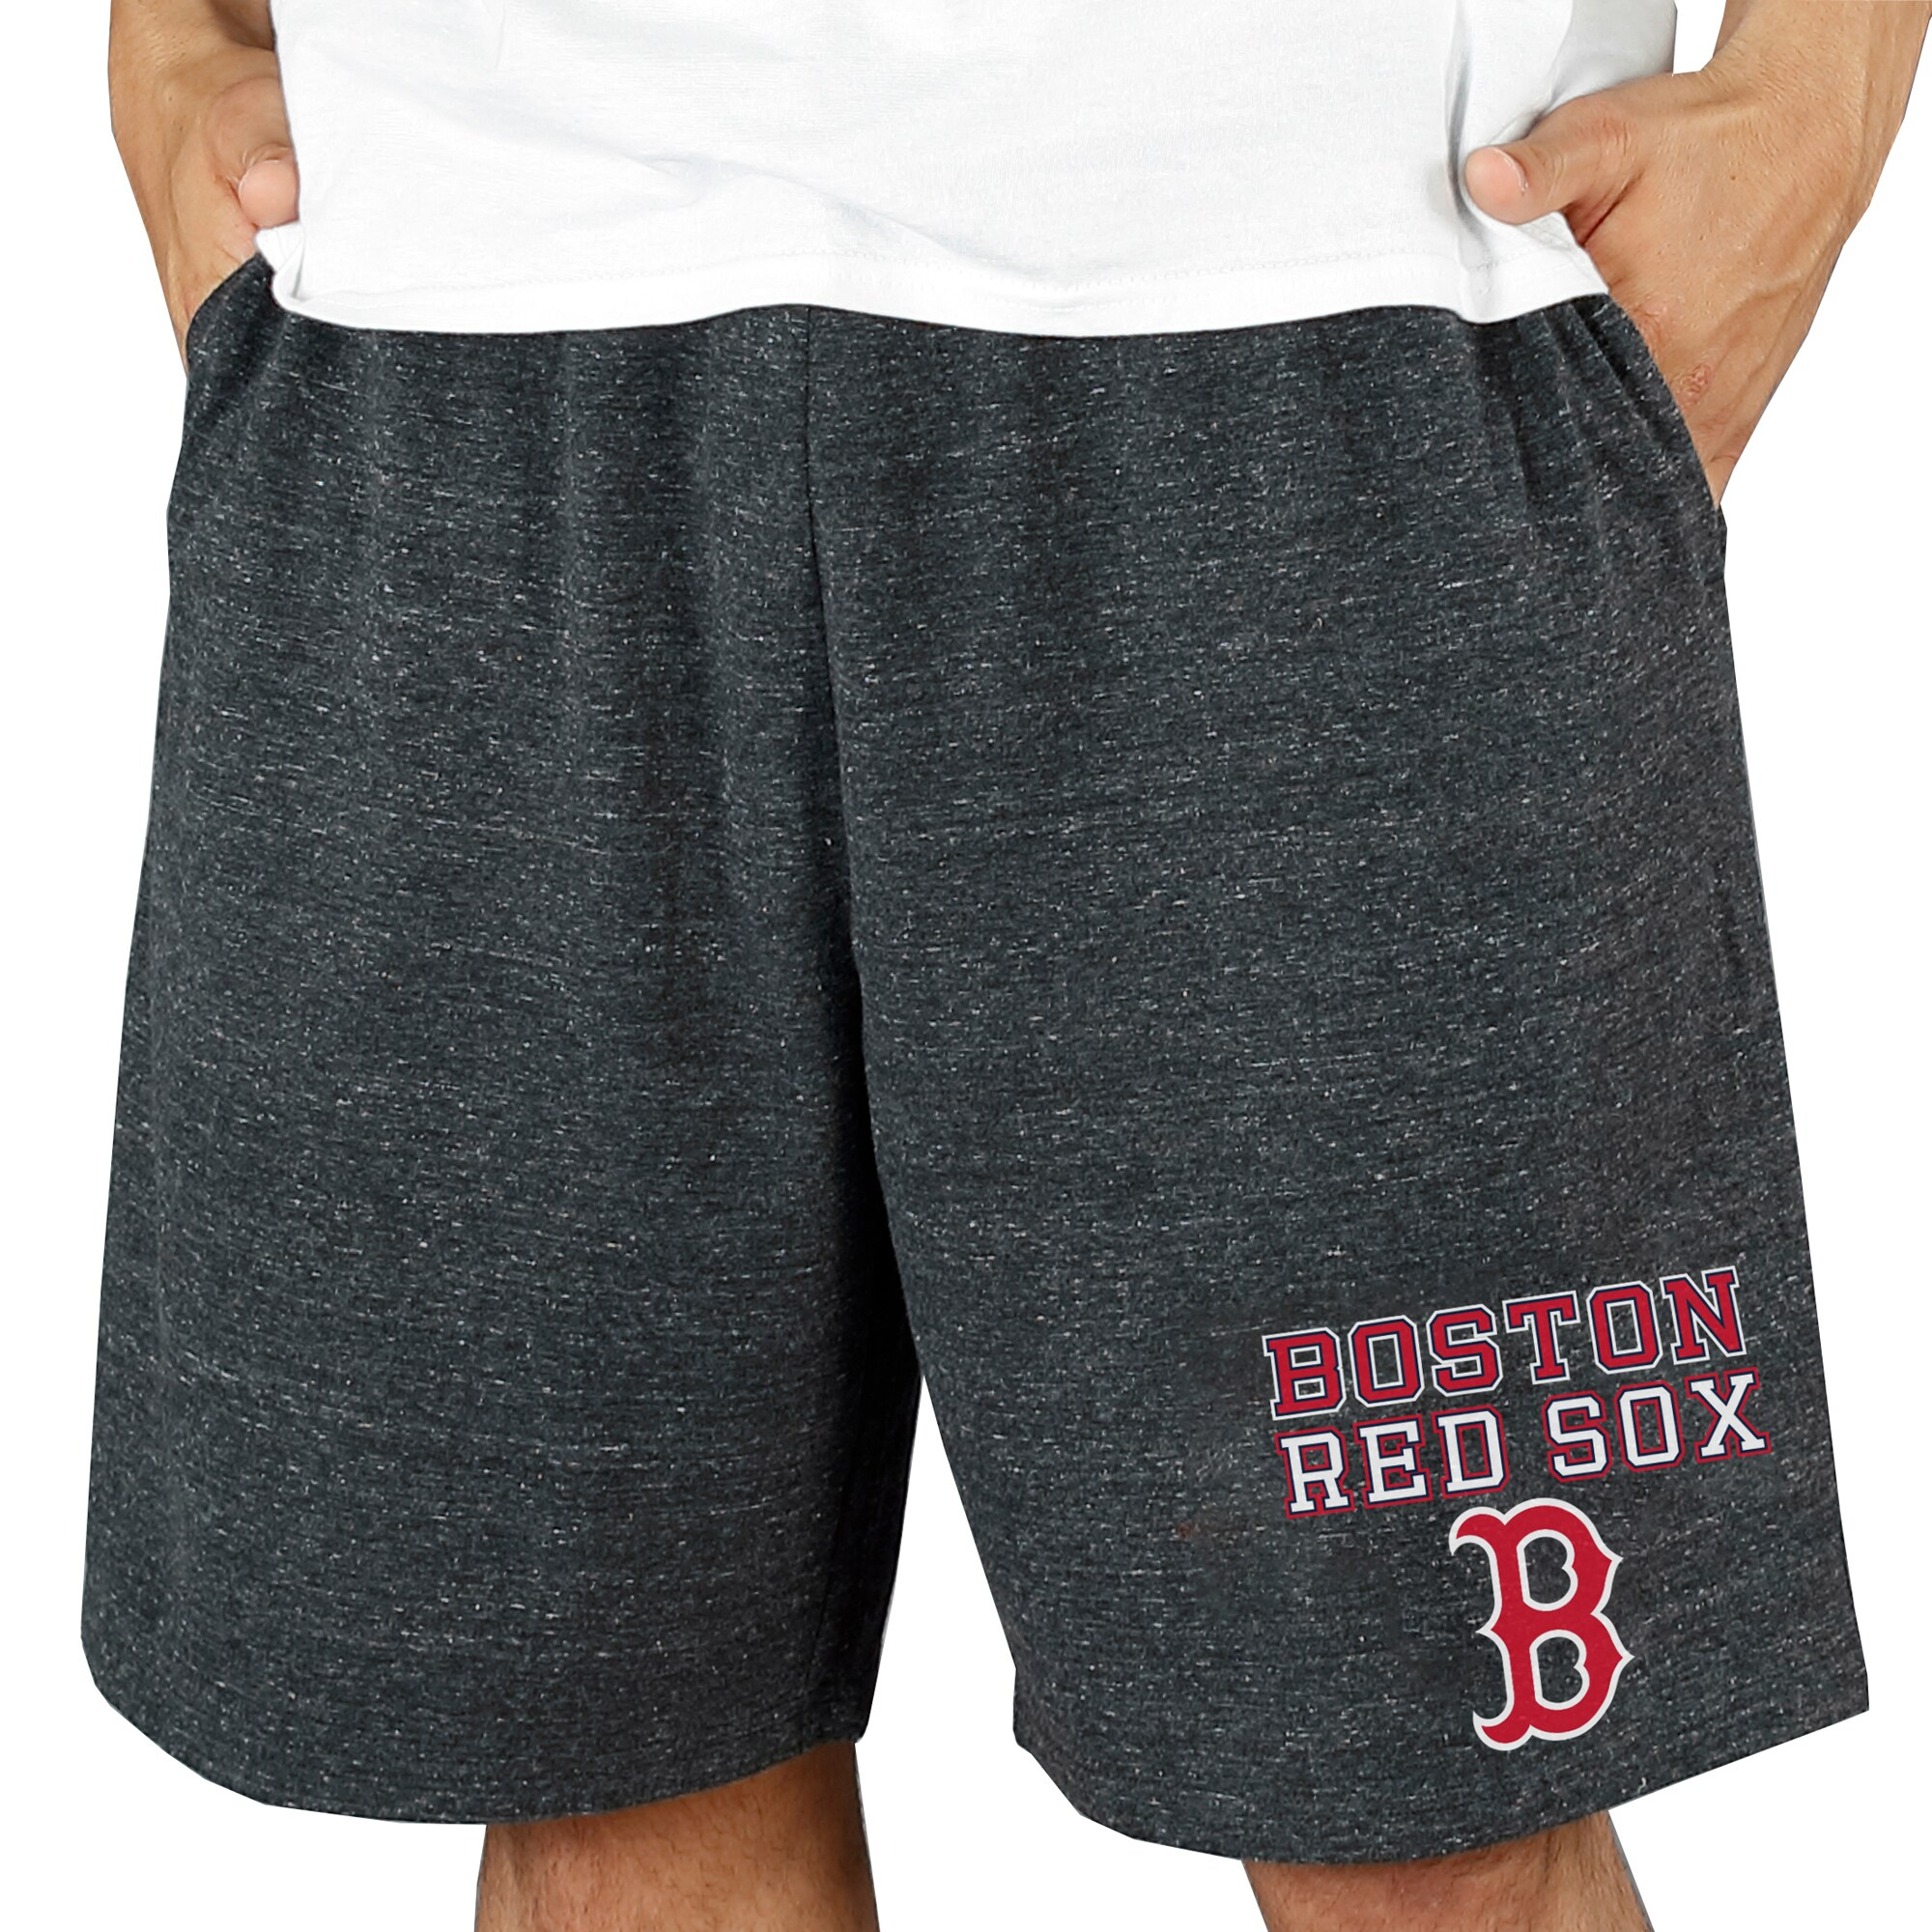 Boston Red Sox Concepts Sport Pitch Knit Jam Shorts - Charcoal